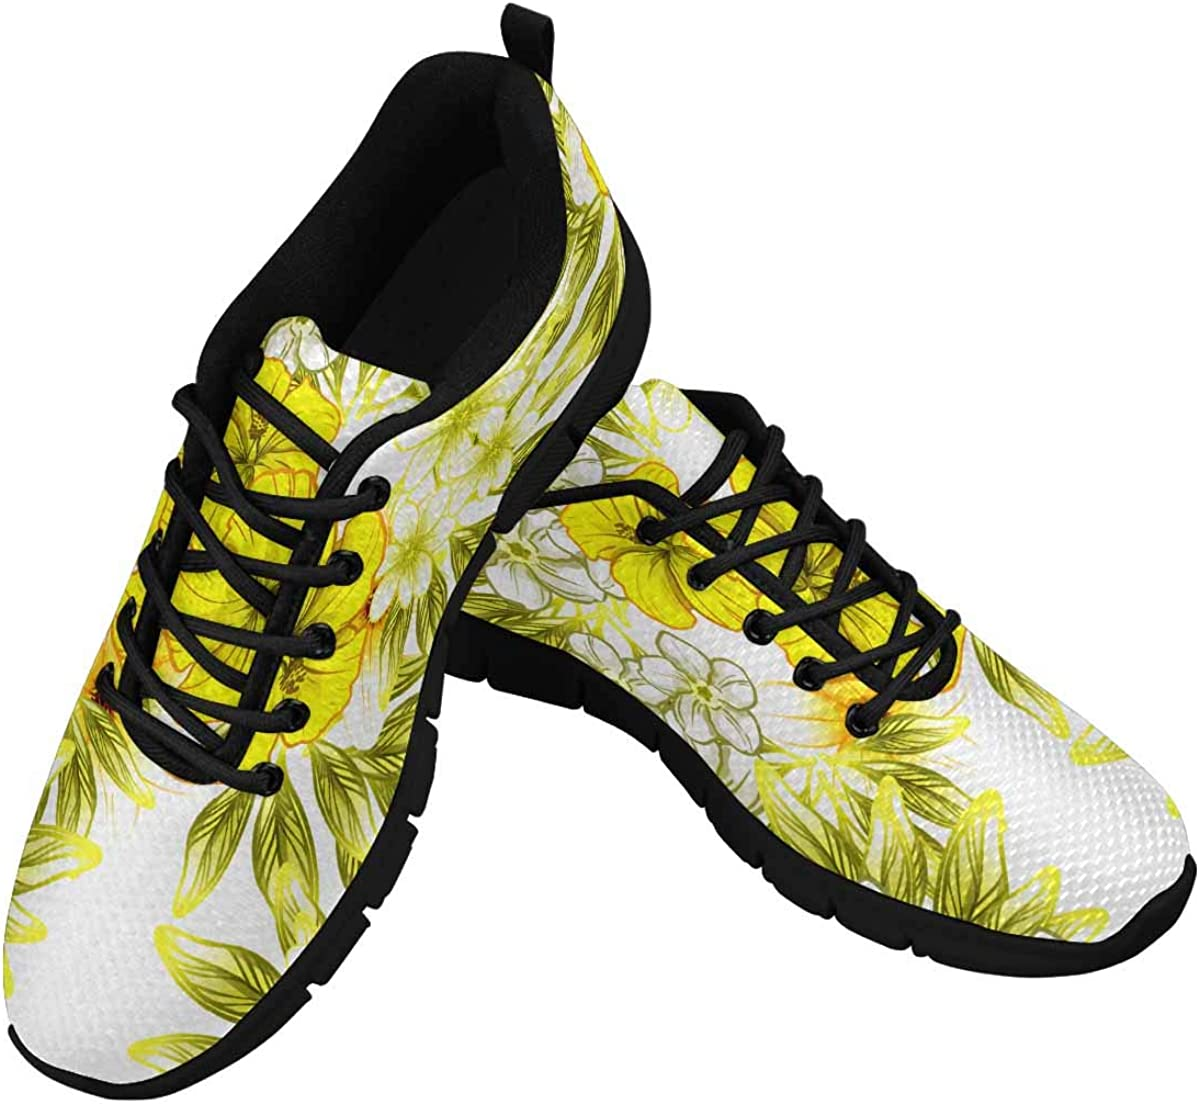 INTERESTPRINT Flower Print in Bright Colors Women's Lace Up Running Comfort Sports Sneakers